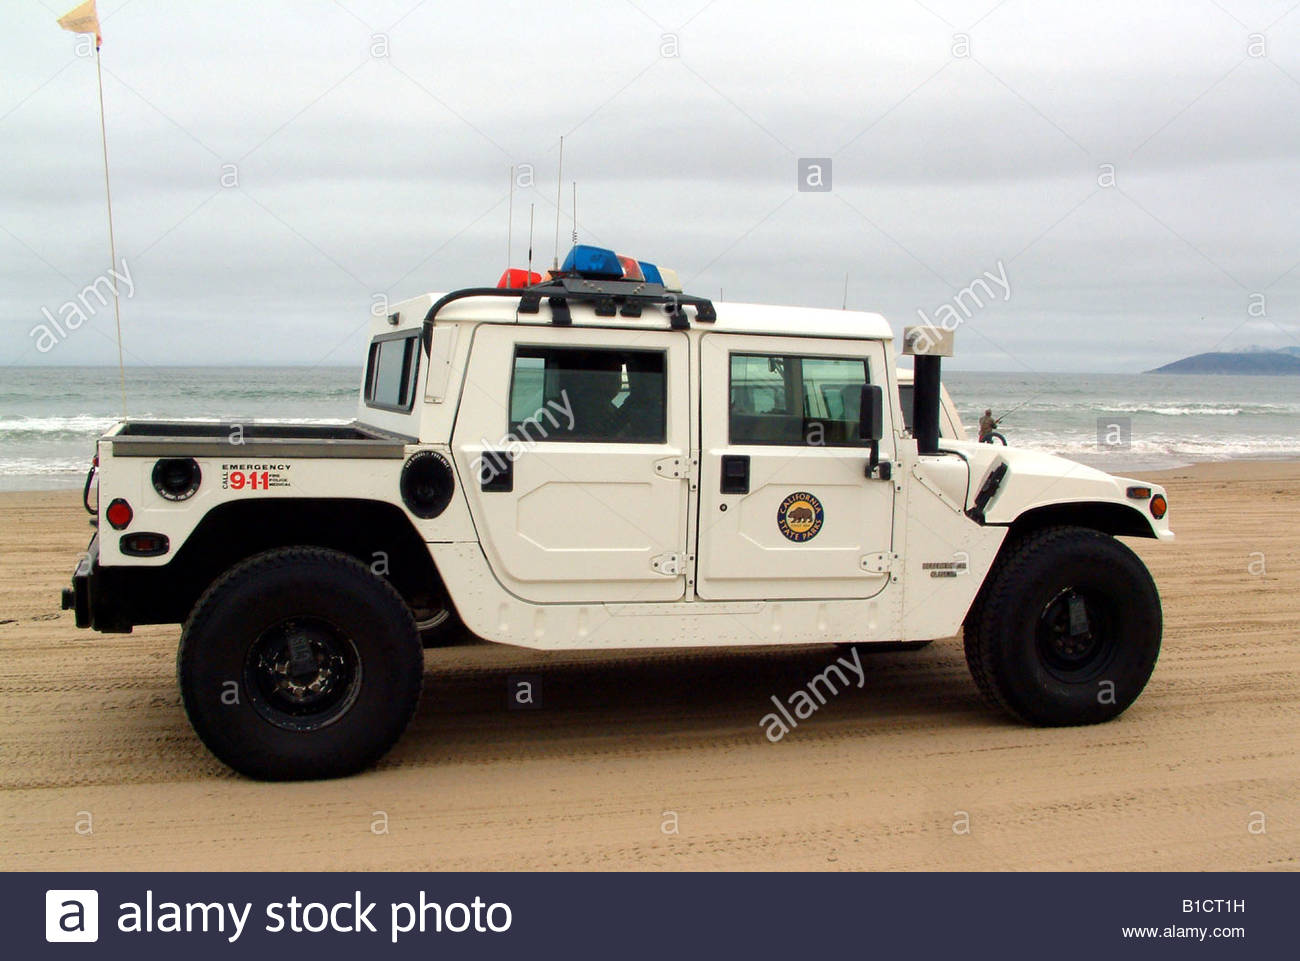 4x4 hummer humvee police car southern california usa summer hot sunny stock photo royalty free. Black Bedroom Furniture Sets. Home Design Ideas